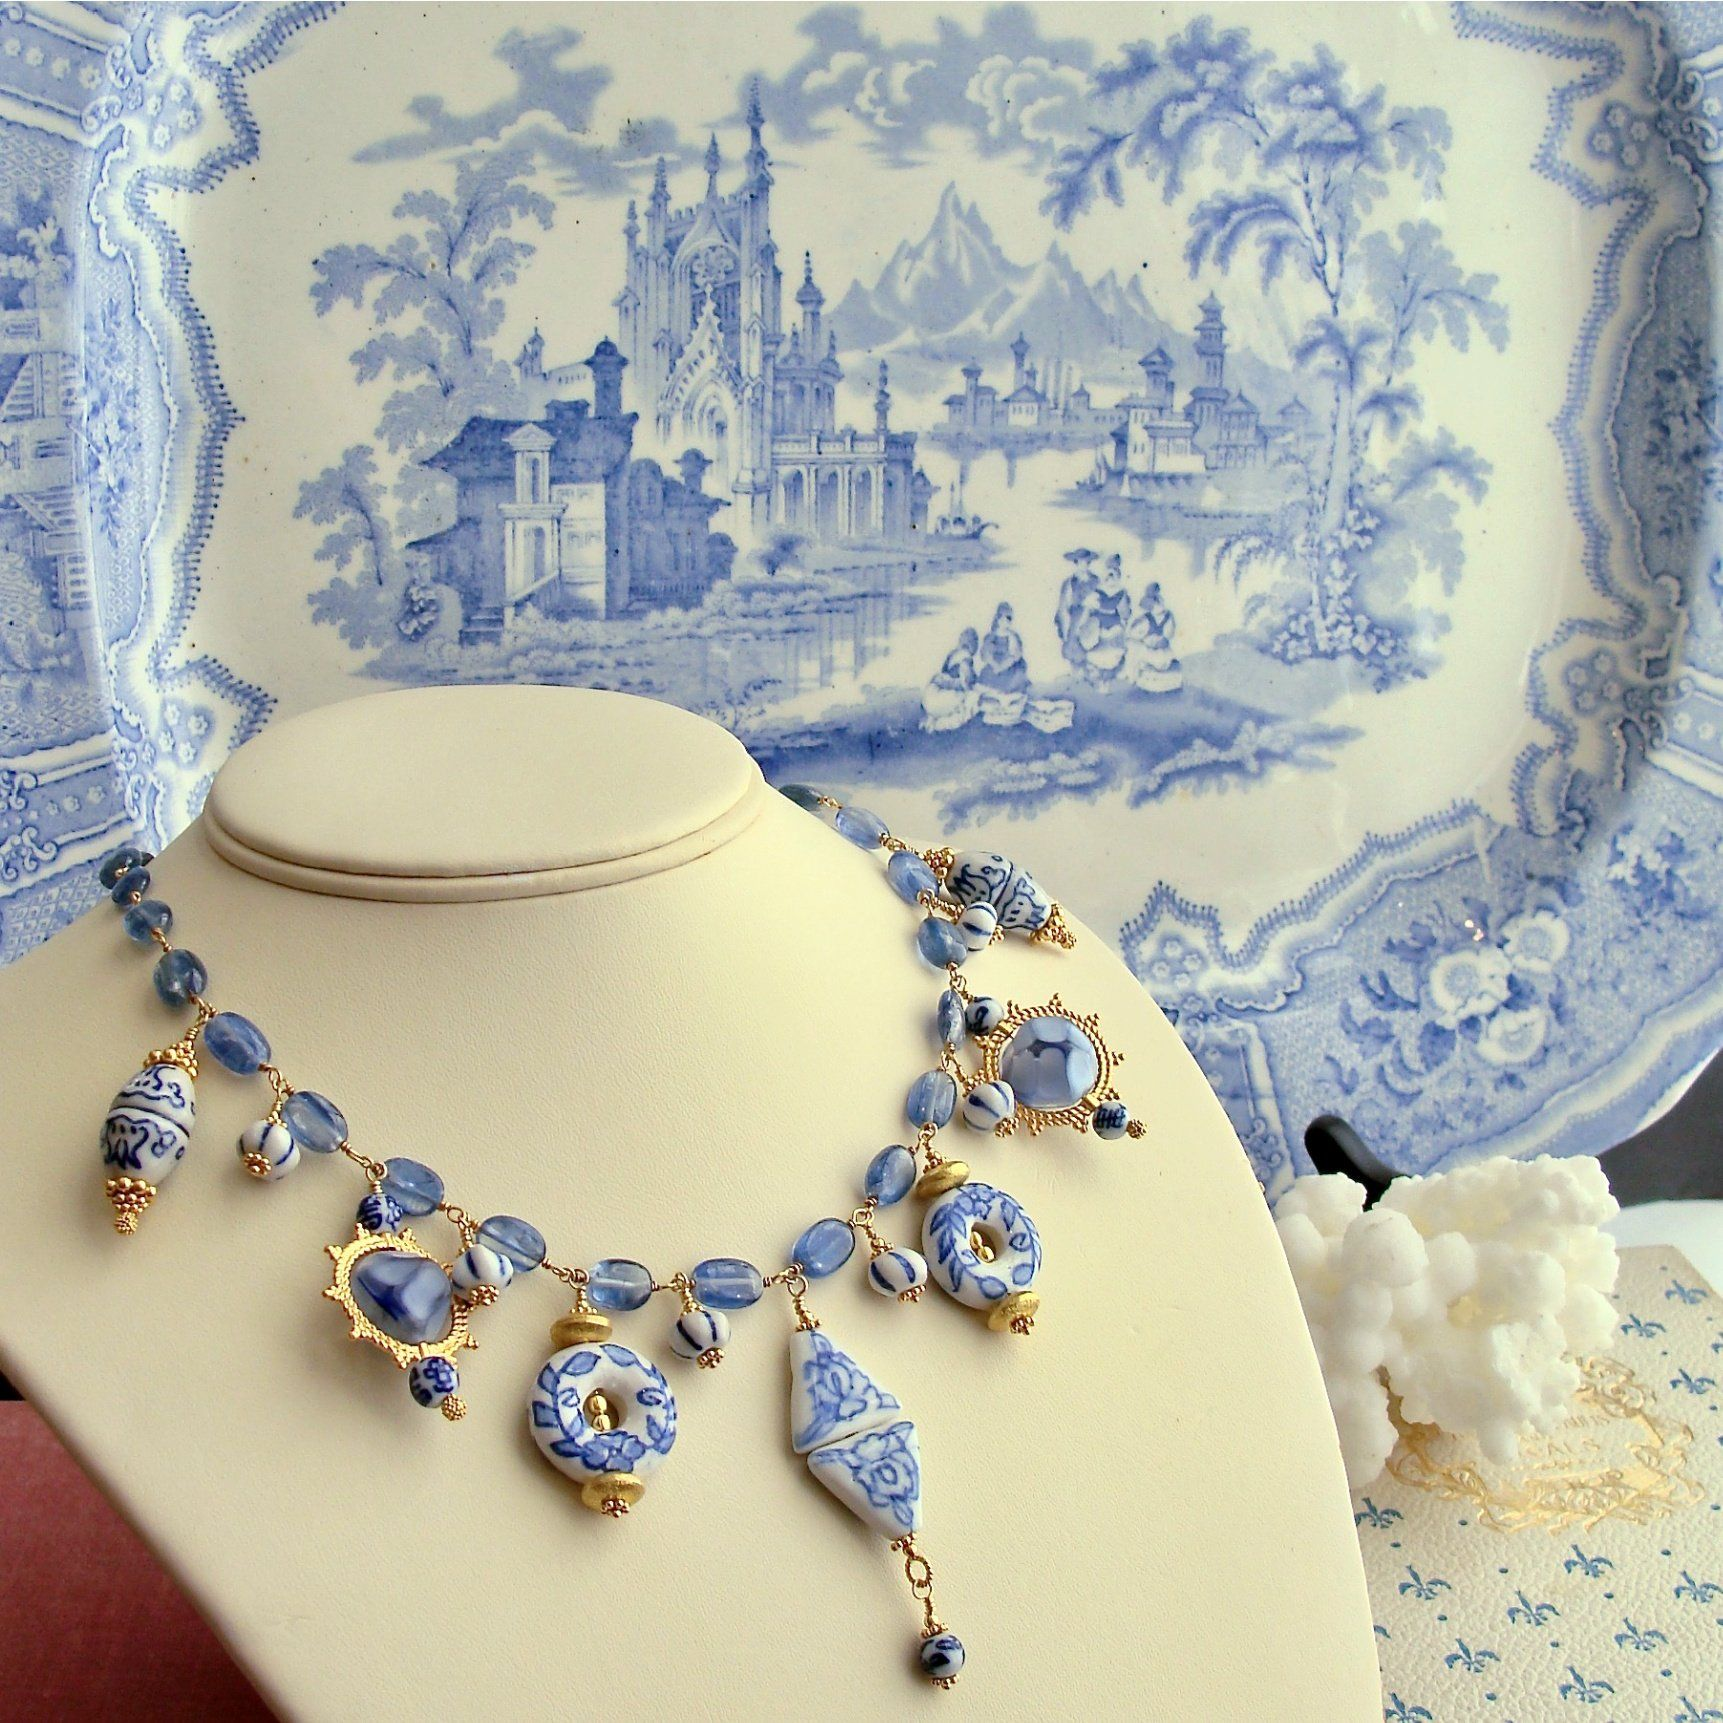 Photo of Kyanite Blue White Porcelain Bead Charm Necklace – Bluebelle IV Necklace